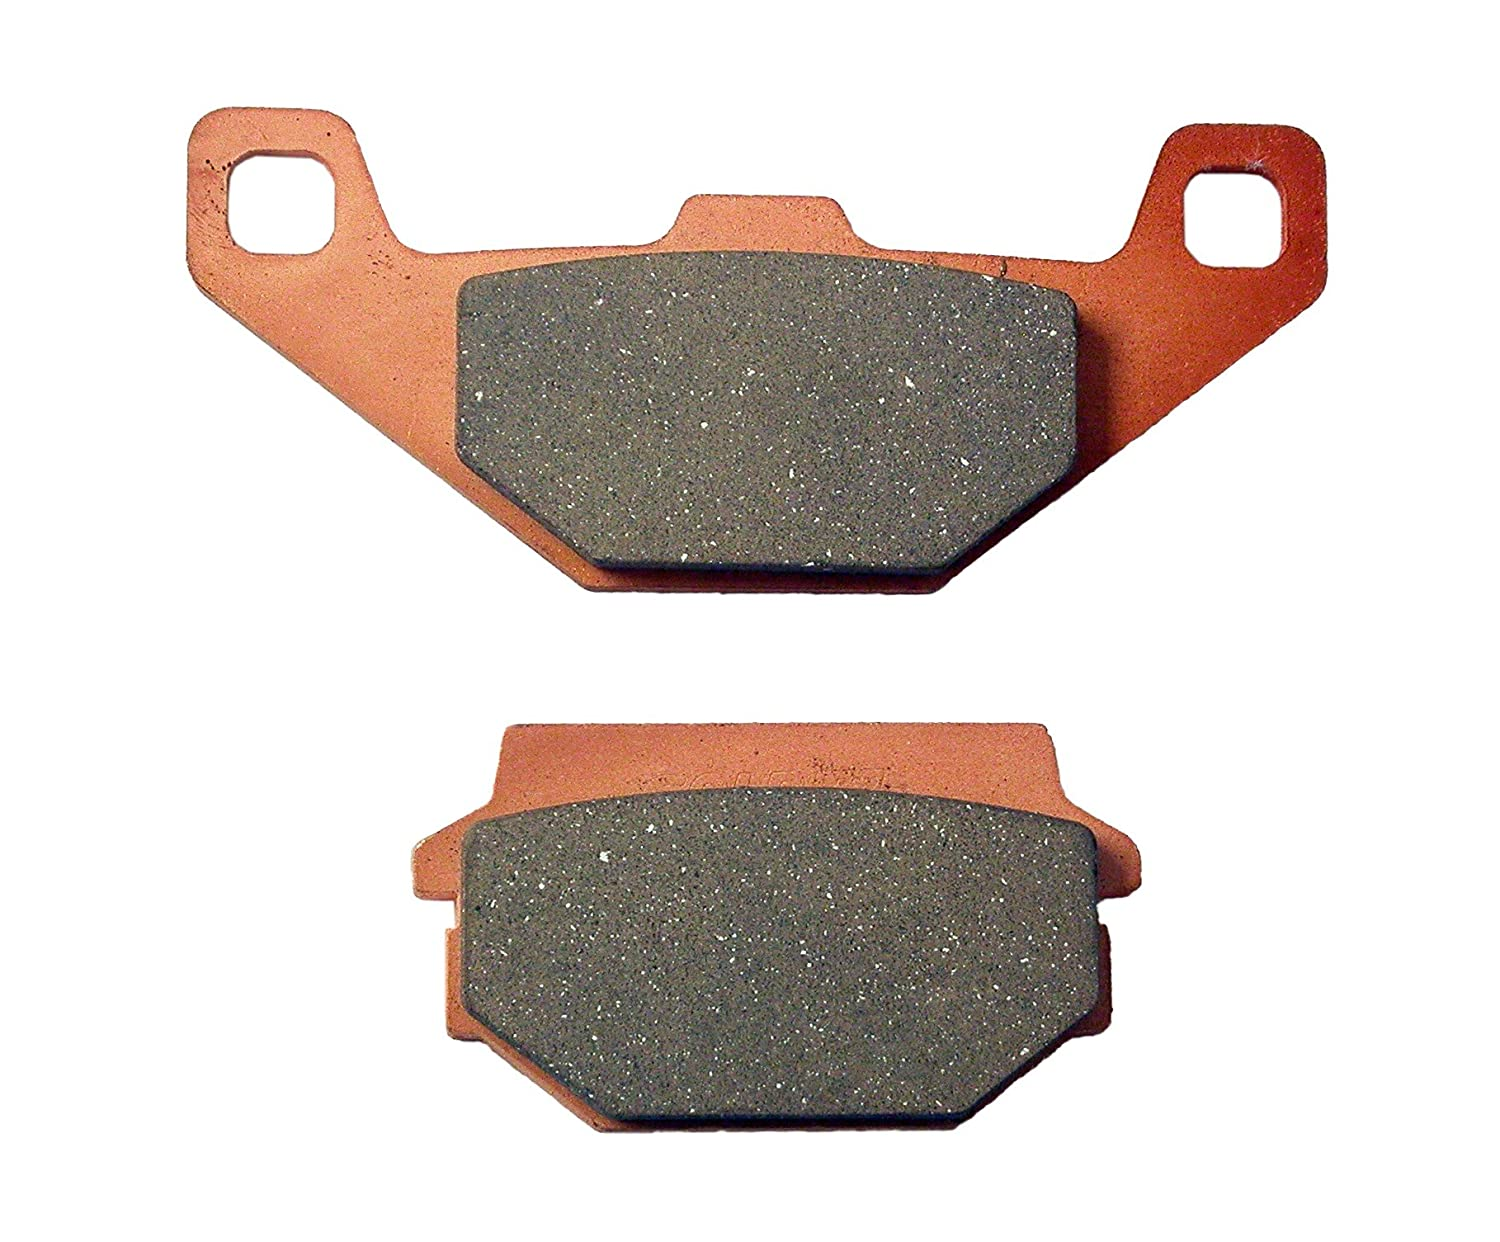 SYM Husky 125 (Global) 1998-2005 Brake Disc Pads Goldfren - Front Right (Pair) My Moto Parts